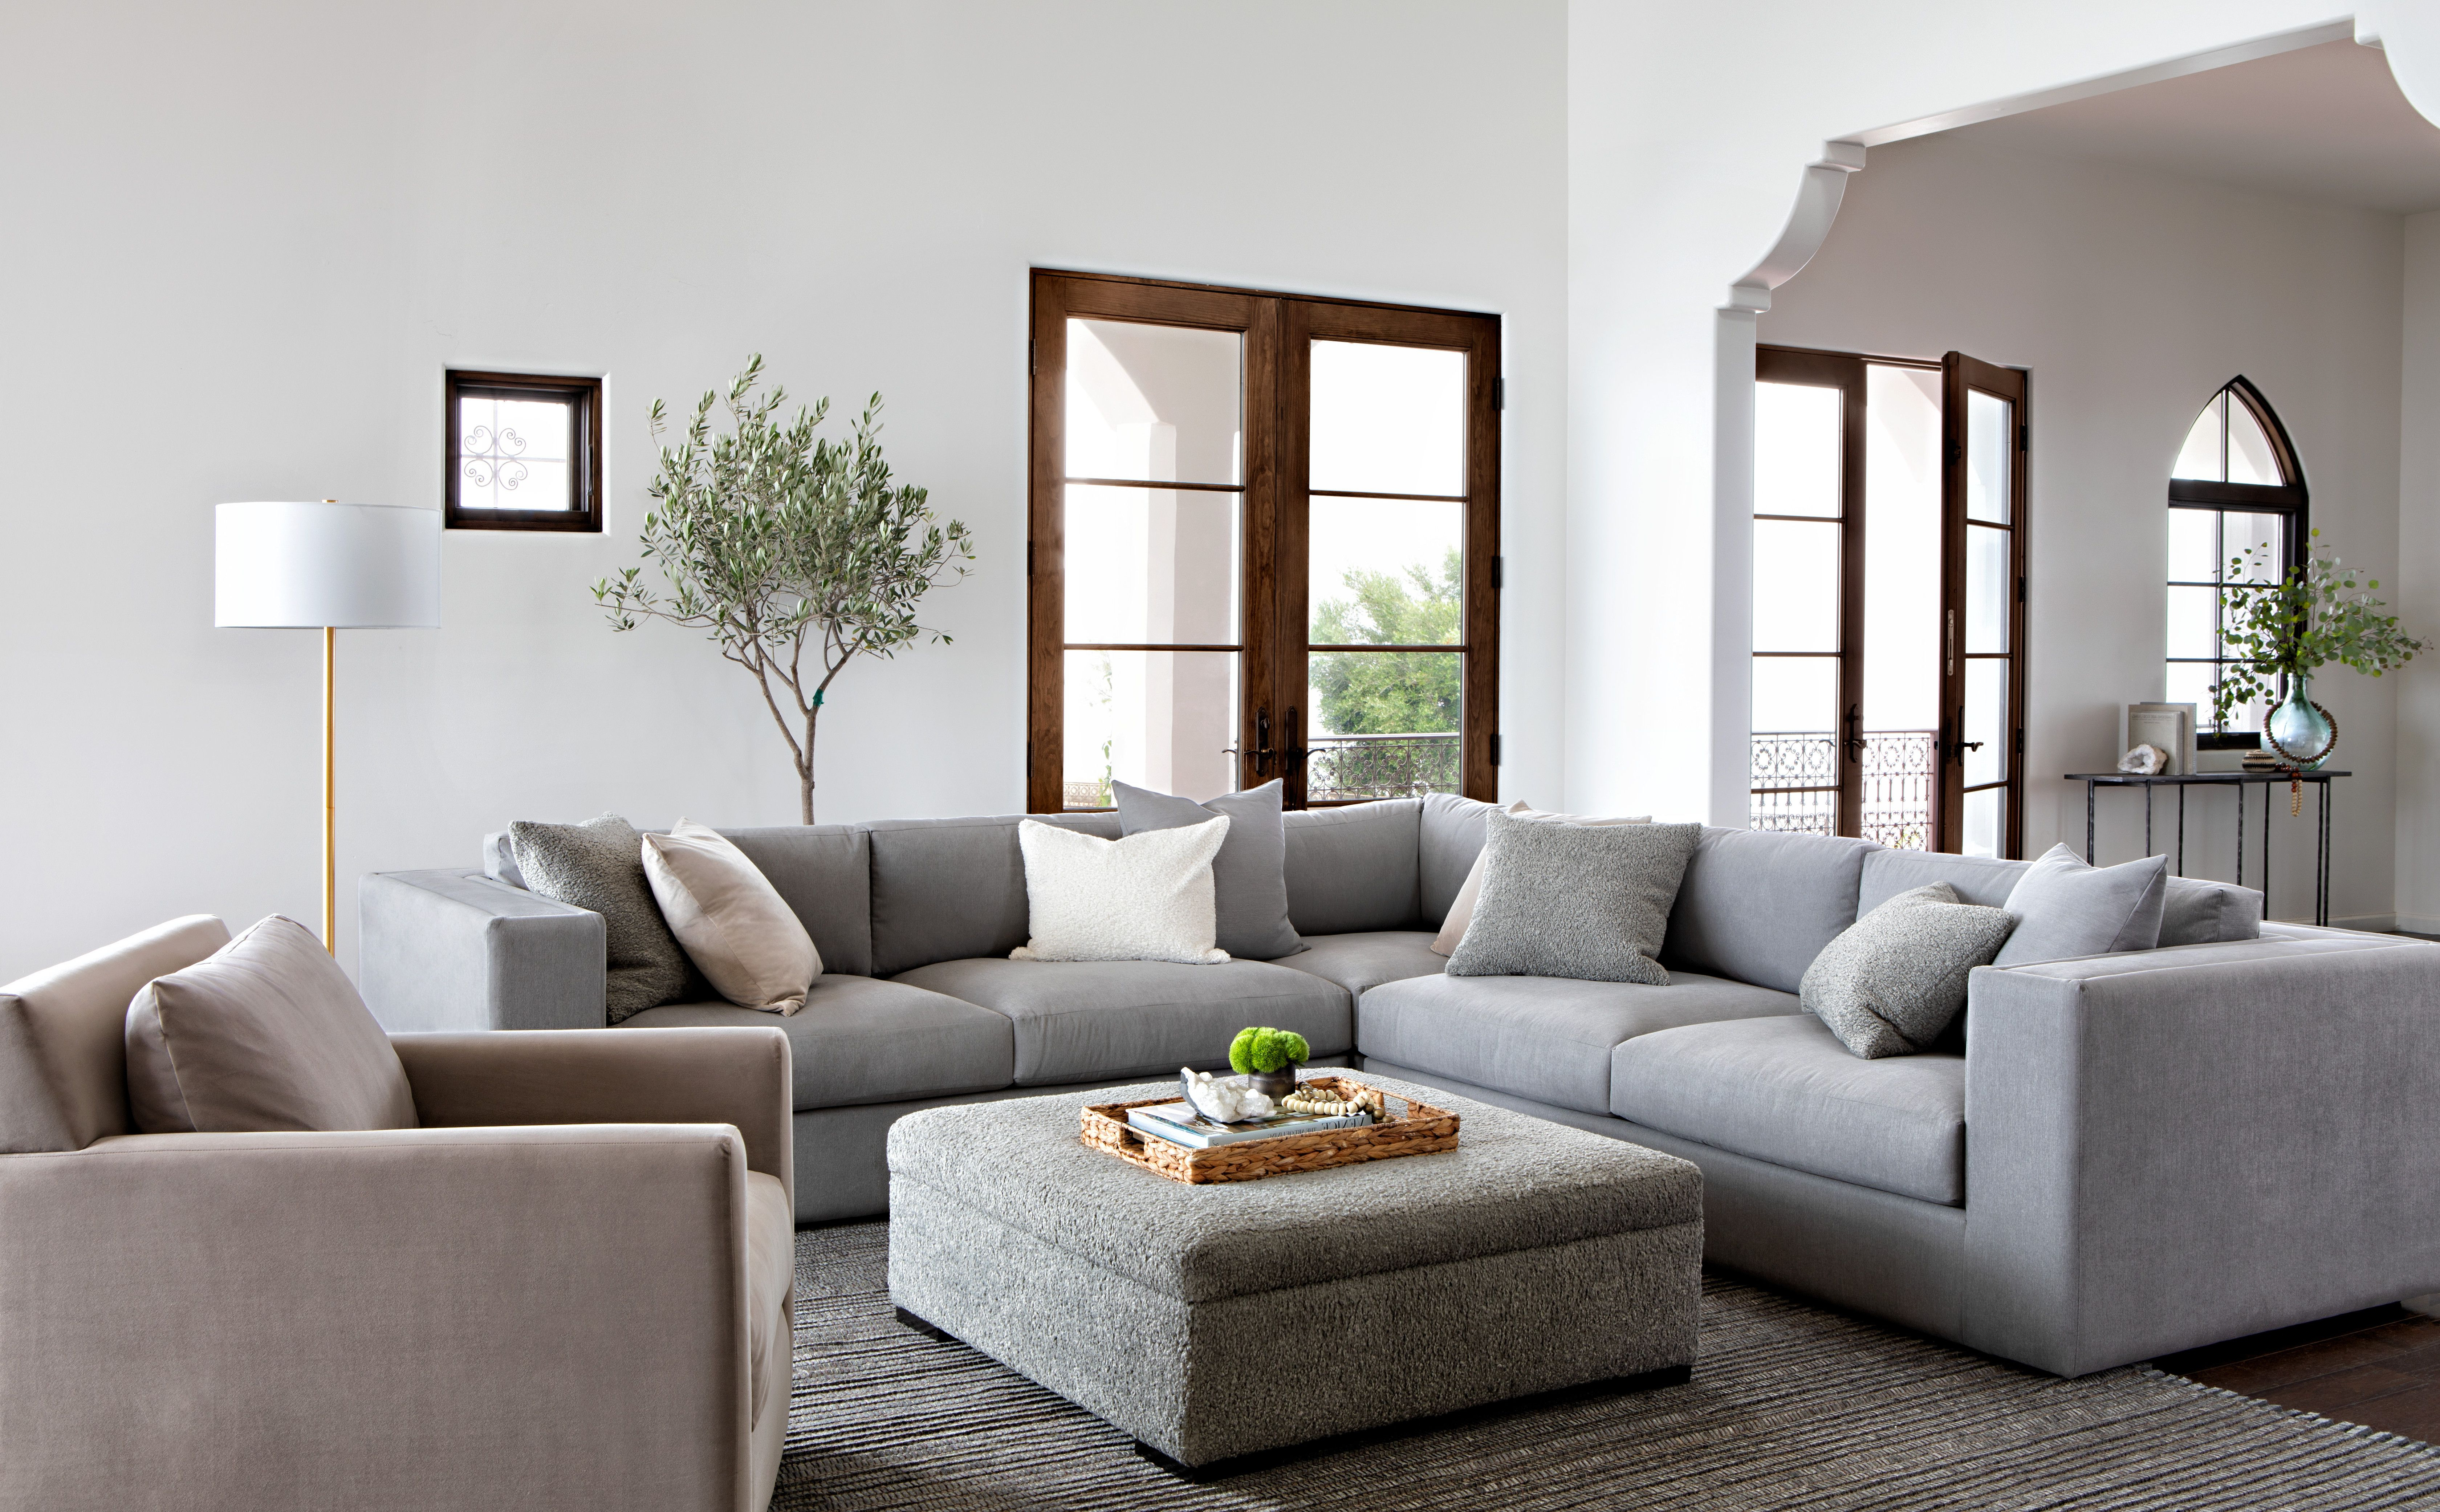 Nate + With Regard To Well Known Liv Arm Sofa Chairs By Nate Berkus And Jeremiah Brent (View 14 of 20)